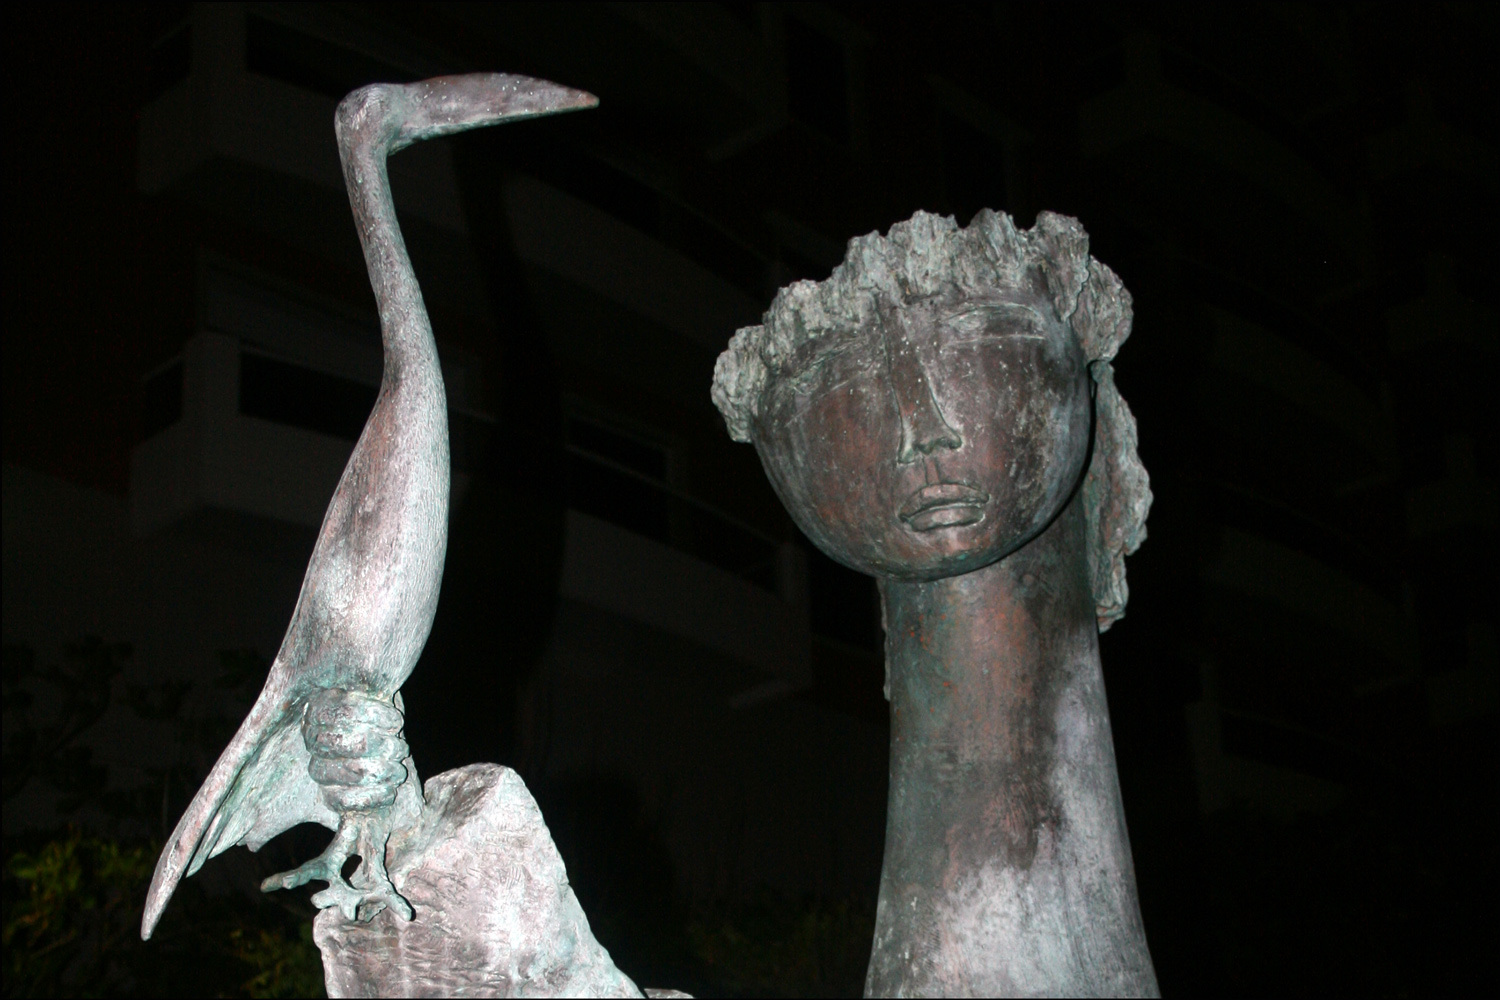 Sculpture at La Ventana al Mar